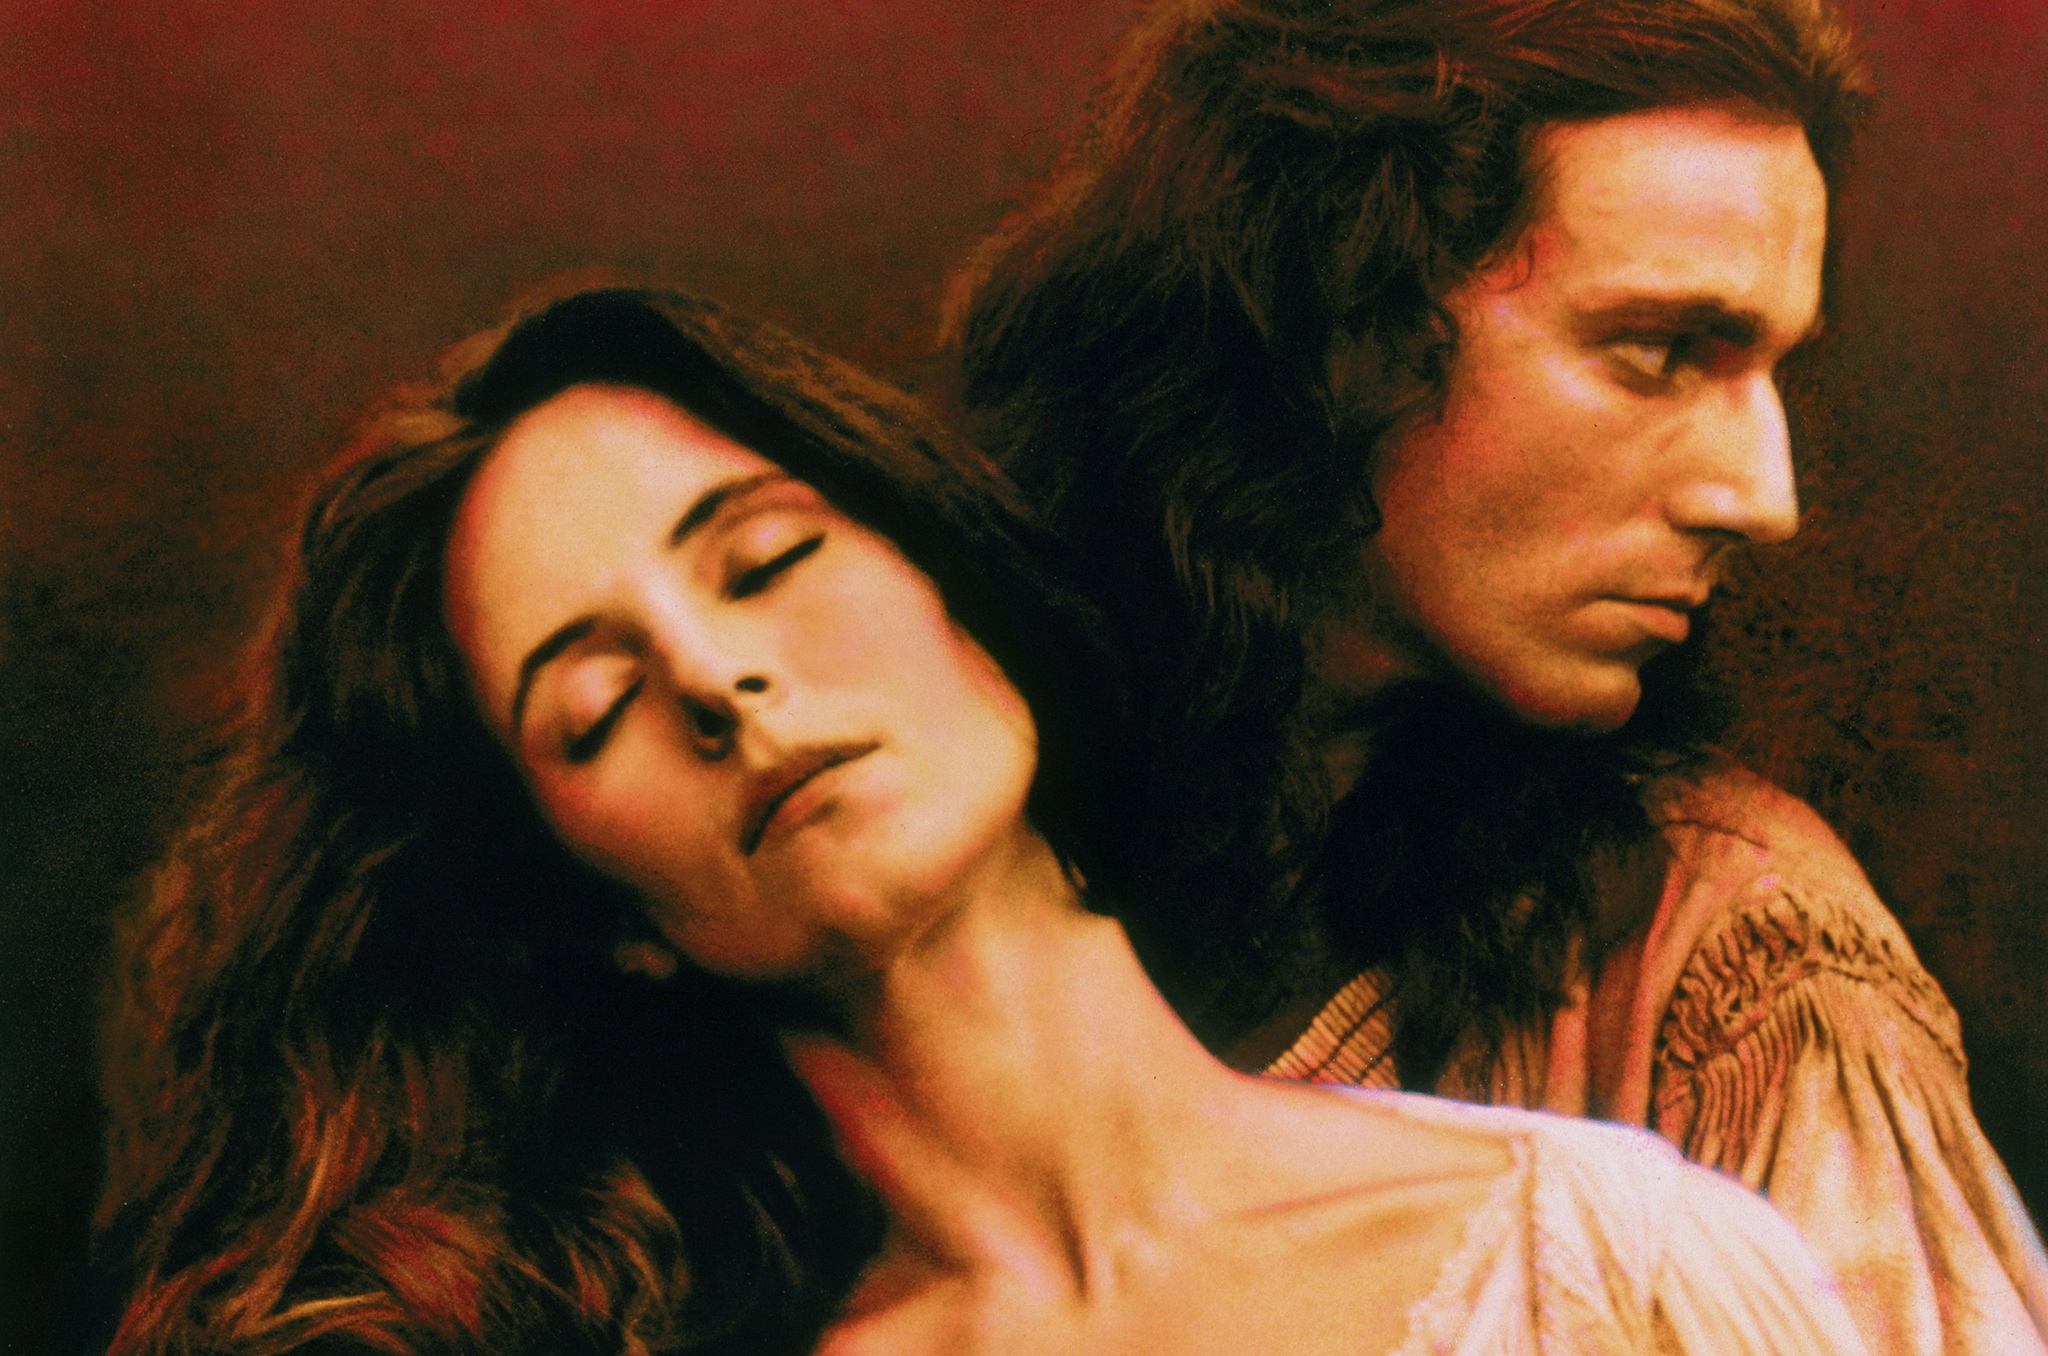 Damsels: Madeleine Stowe – The Last of the Mohicans ...